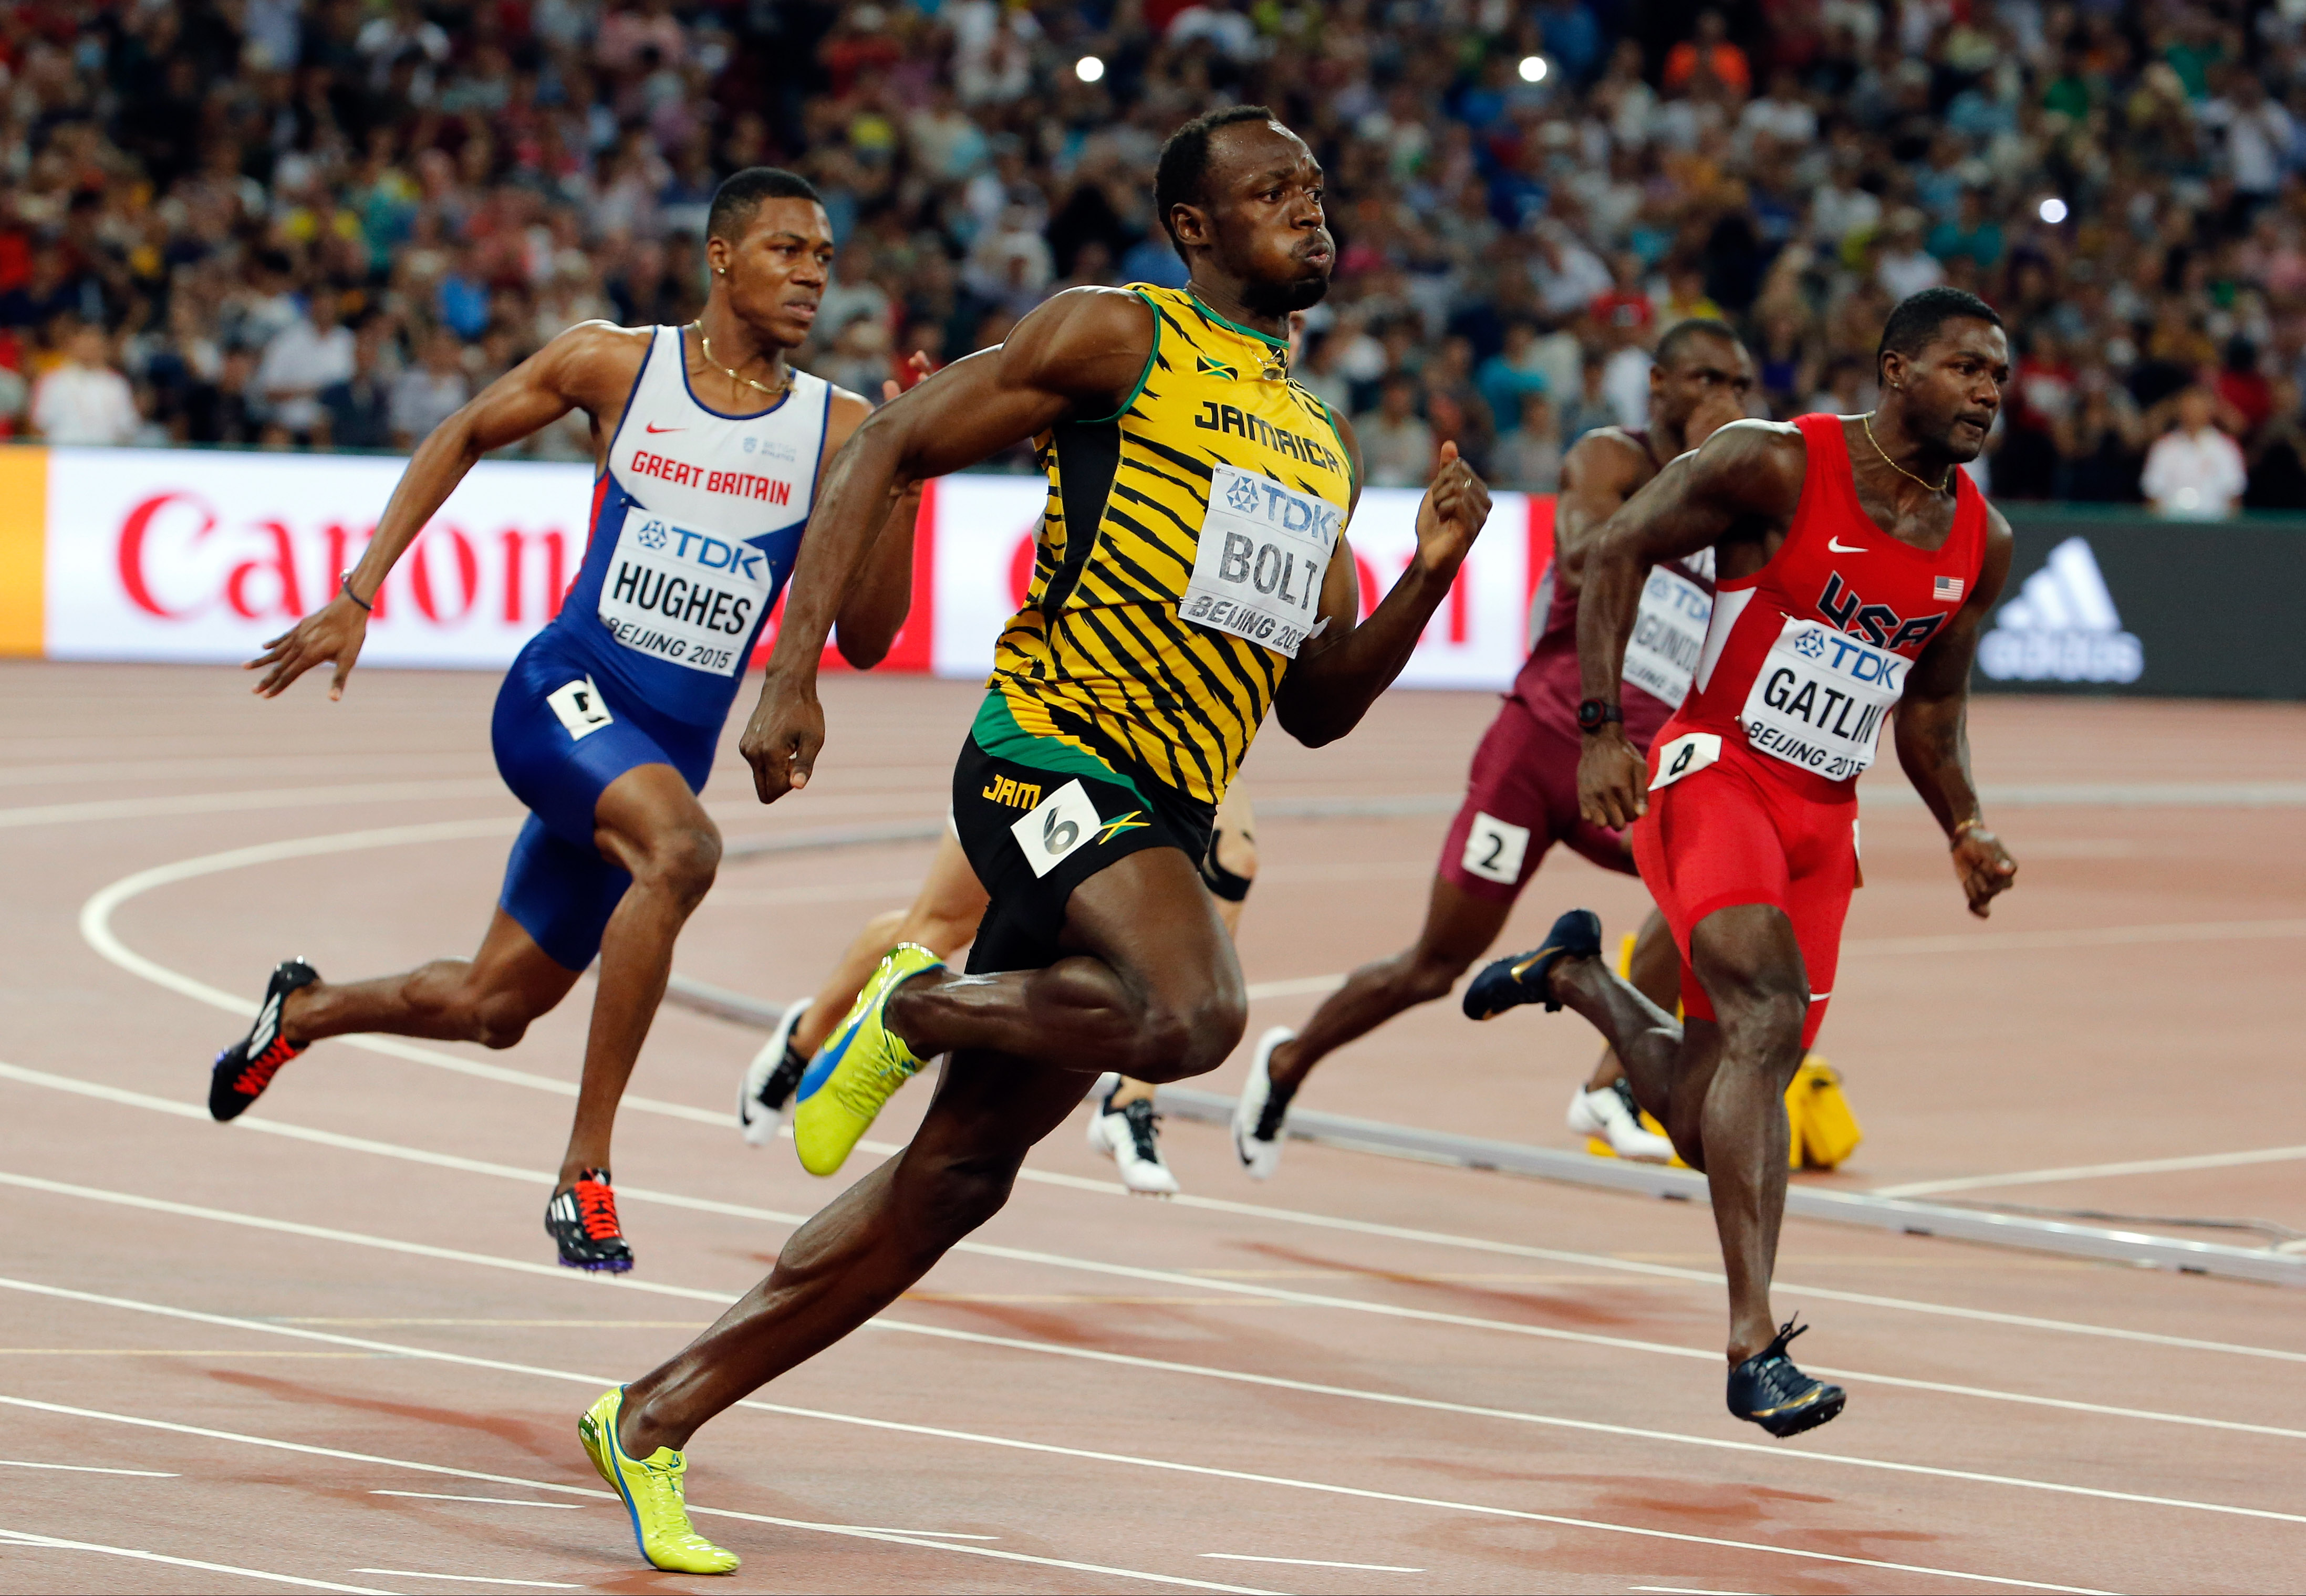 2016 Rio Olympics - Is Usain Bolt Smart sports images